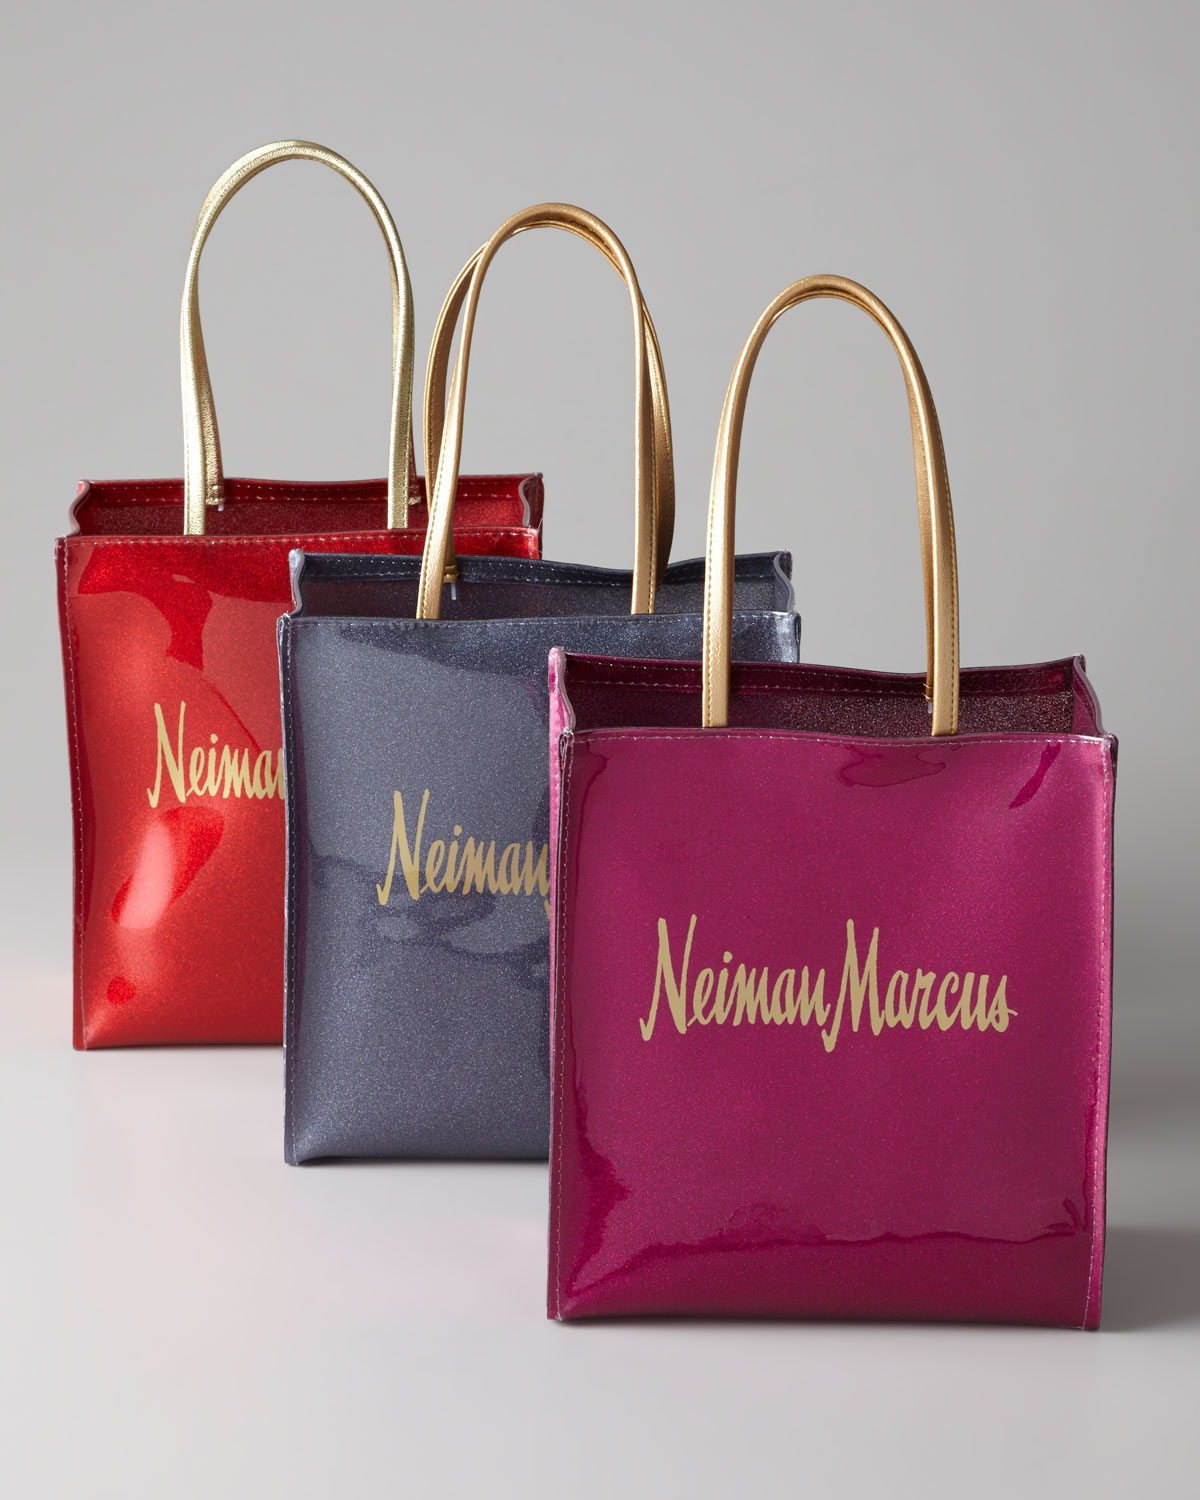 Gallery Previously Sold At Neiman Marcus